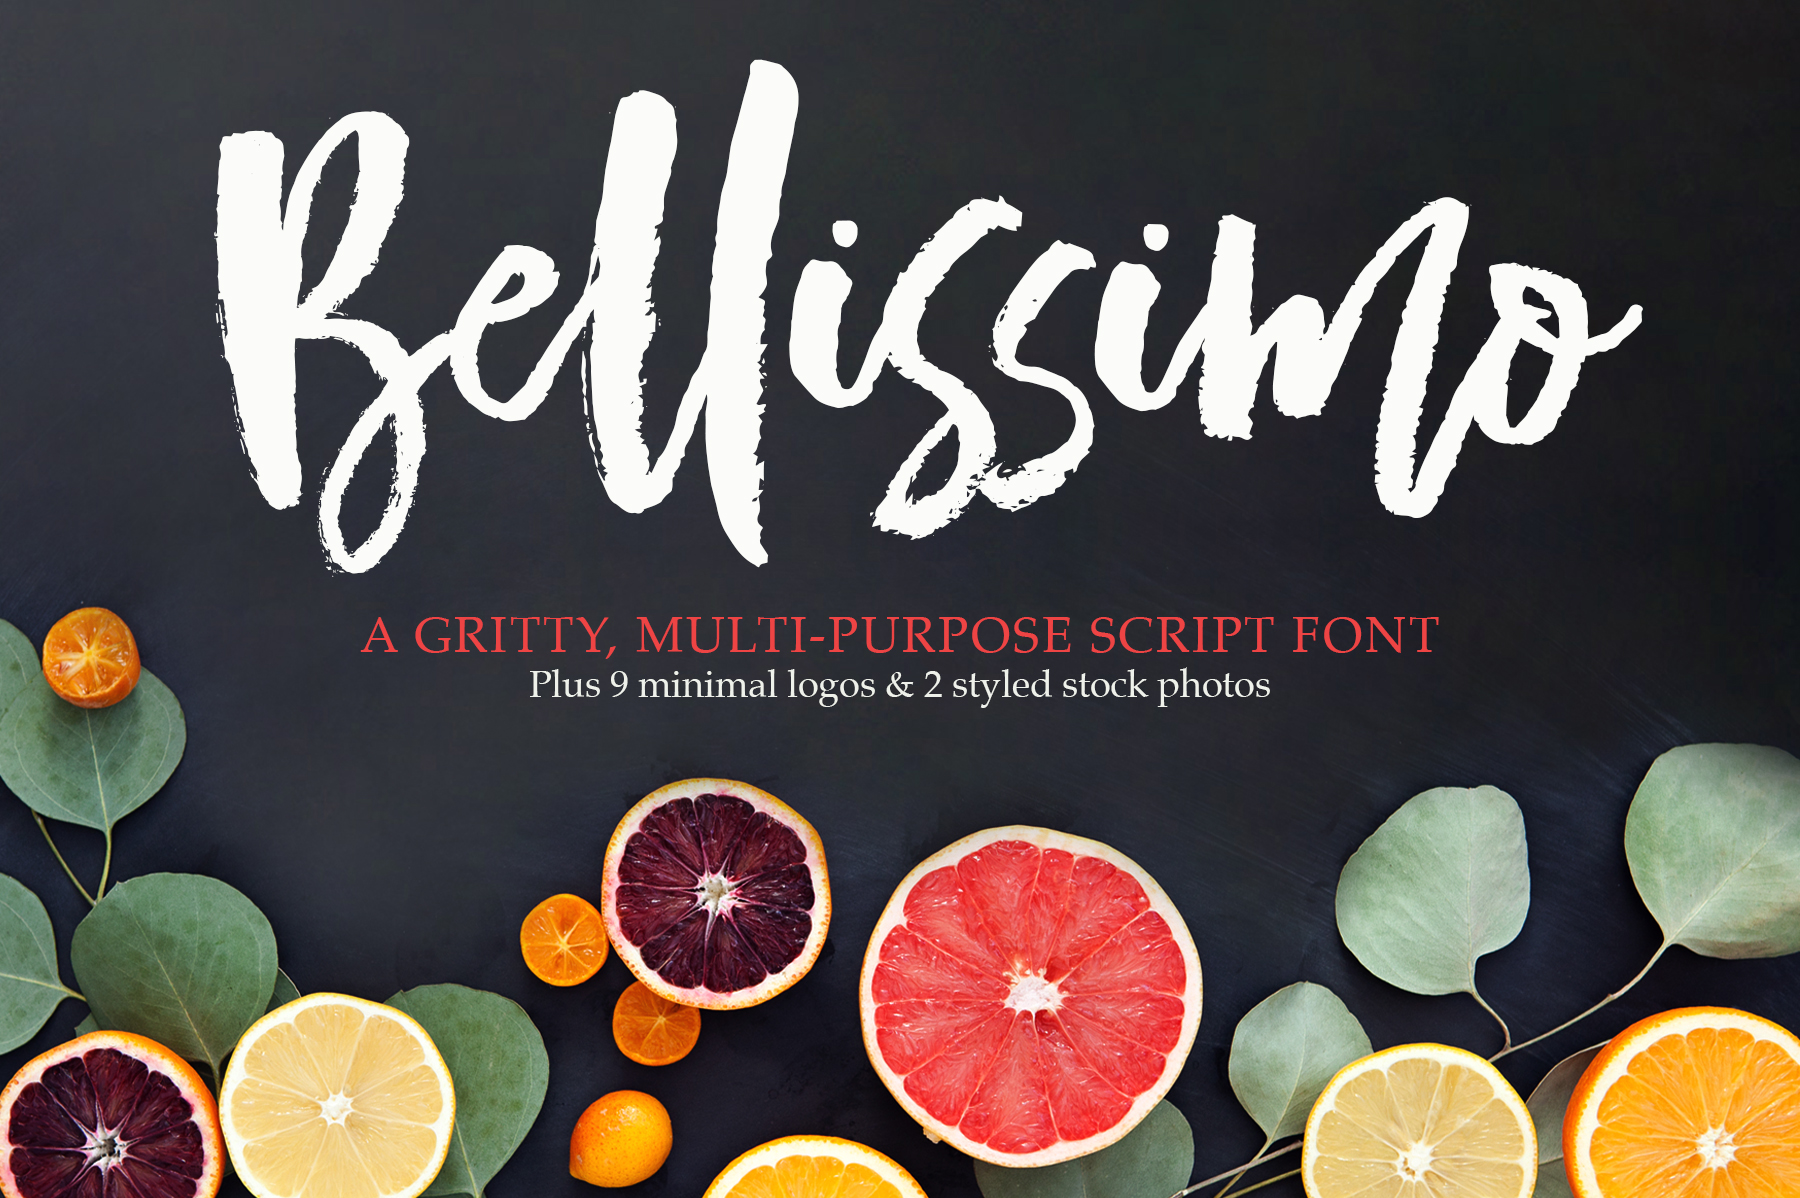 Bellissimo Script from Make Media Co